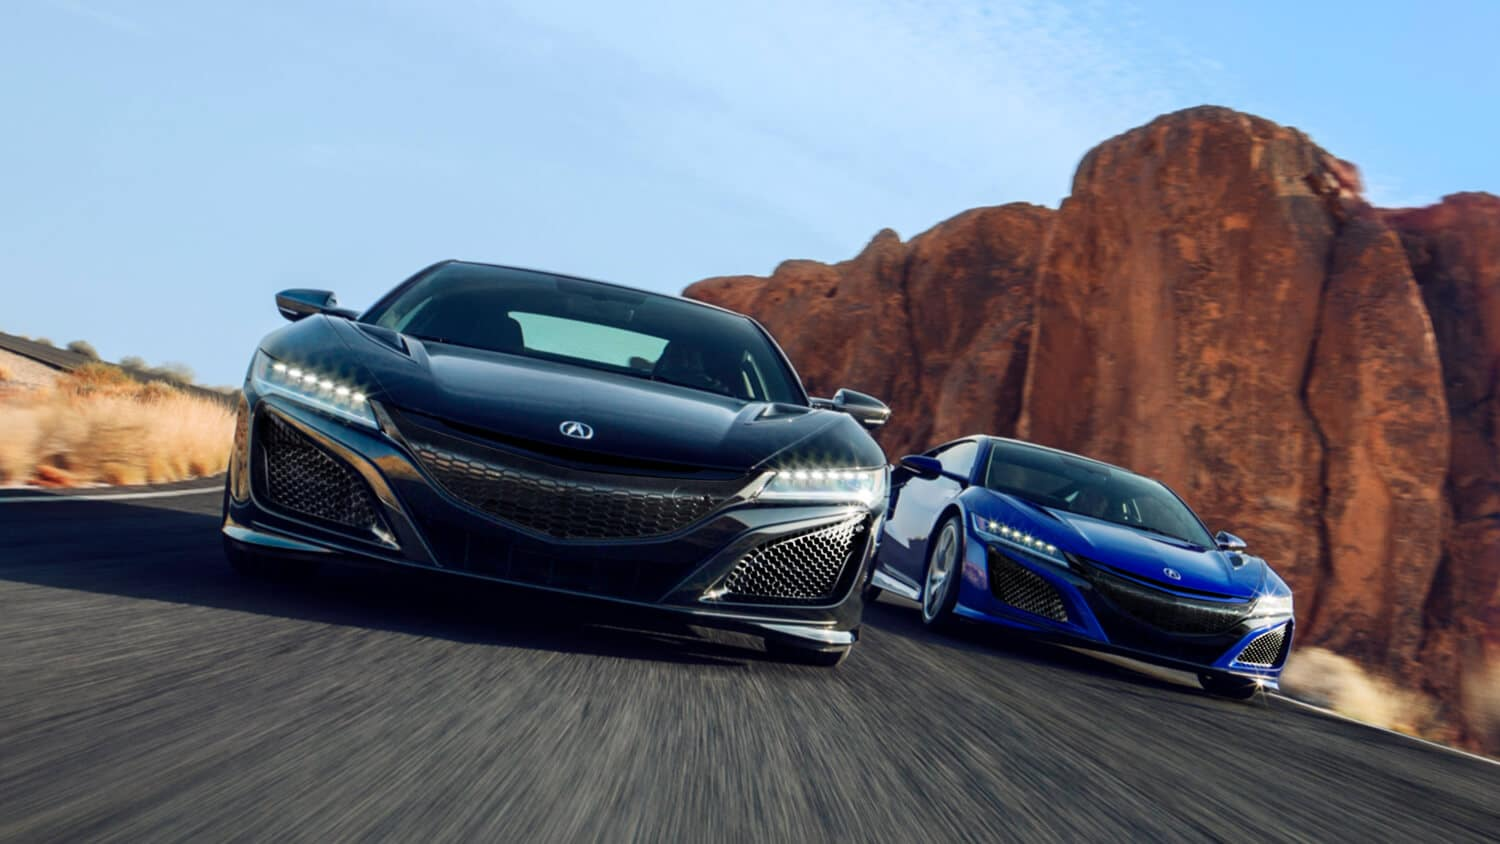 2020 Acura NSX Exterior Front Angle Multi-Vehicle